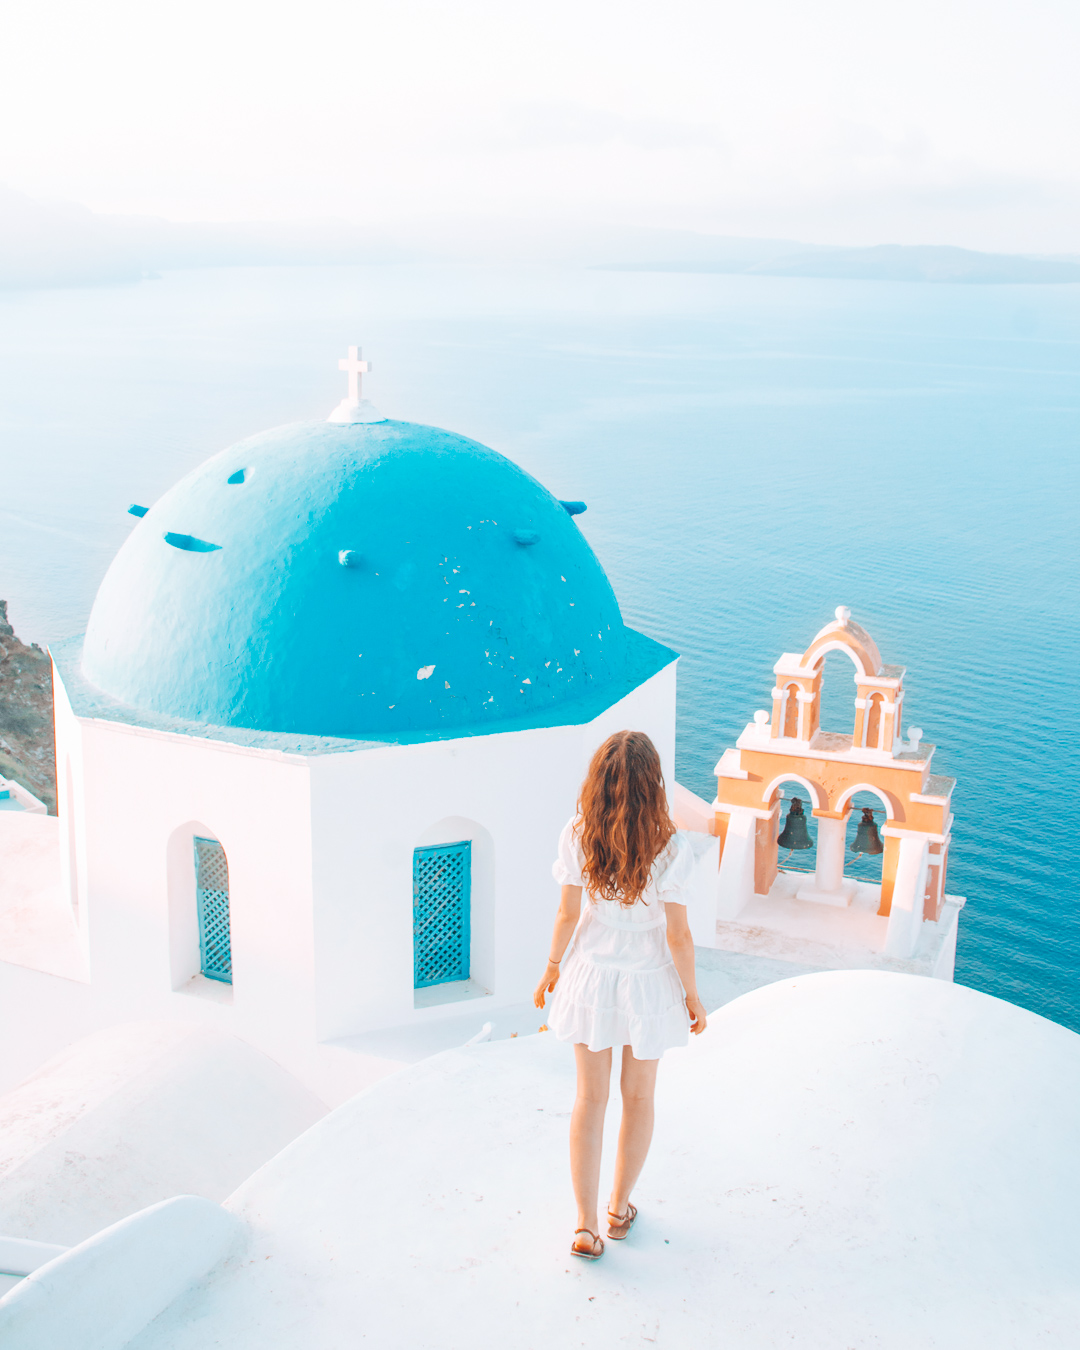 Blue dome and a view of the sea